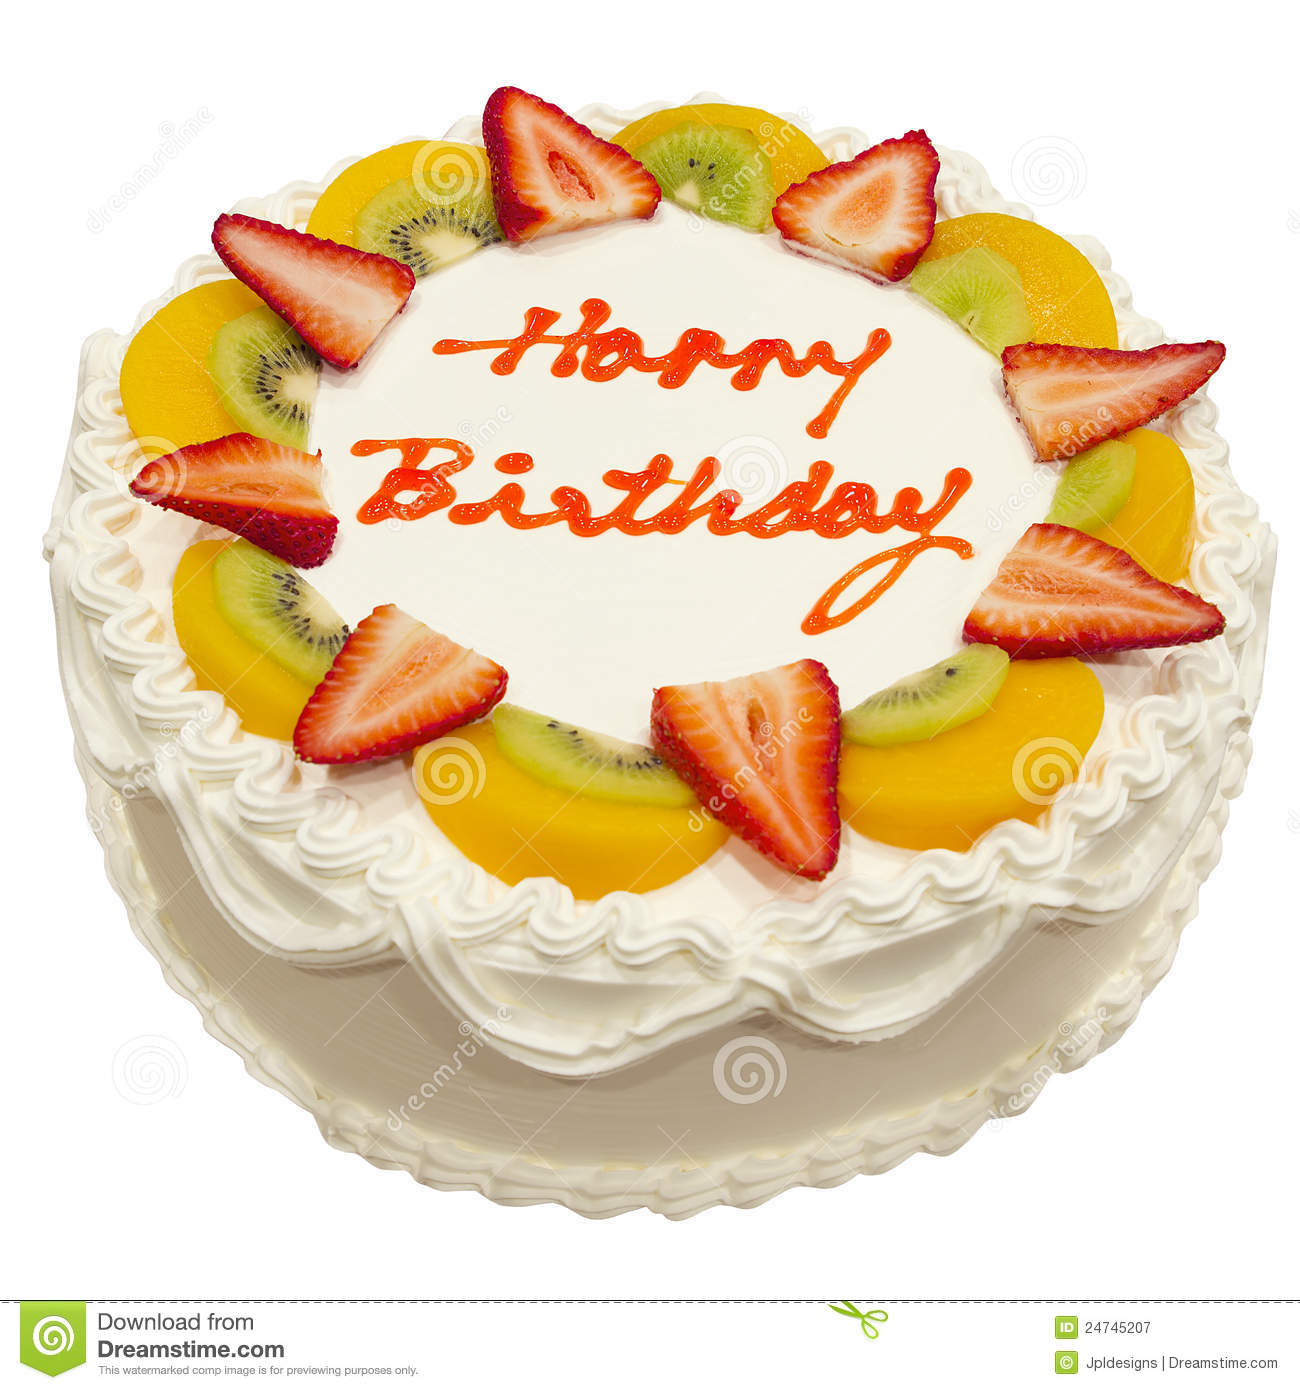 Happy Birthday Fresh Fruit Cake Stock Images